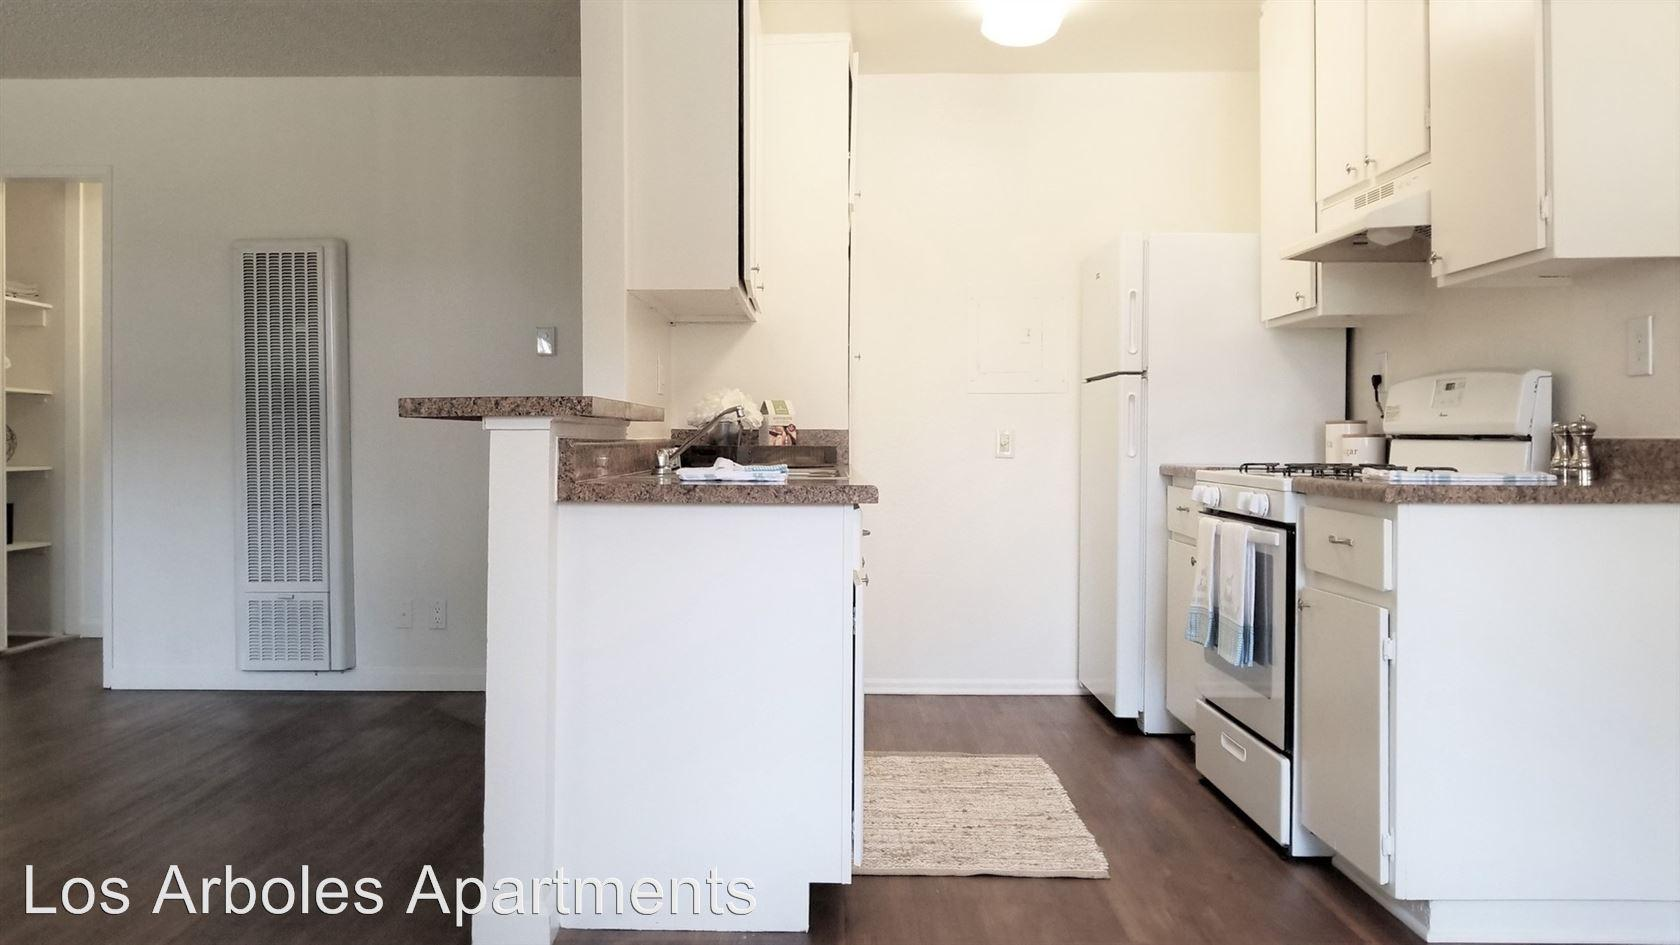 11901 East 176th Street Apartments photo #1